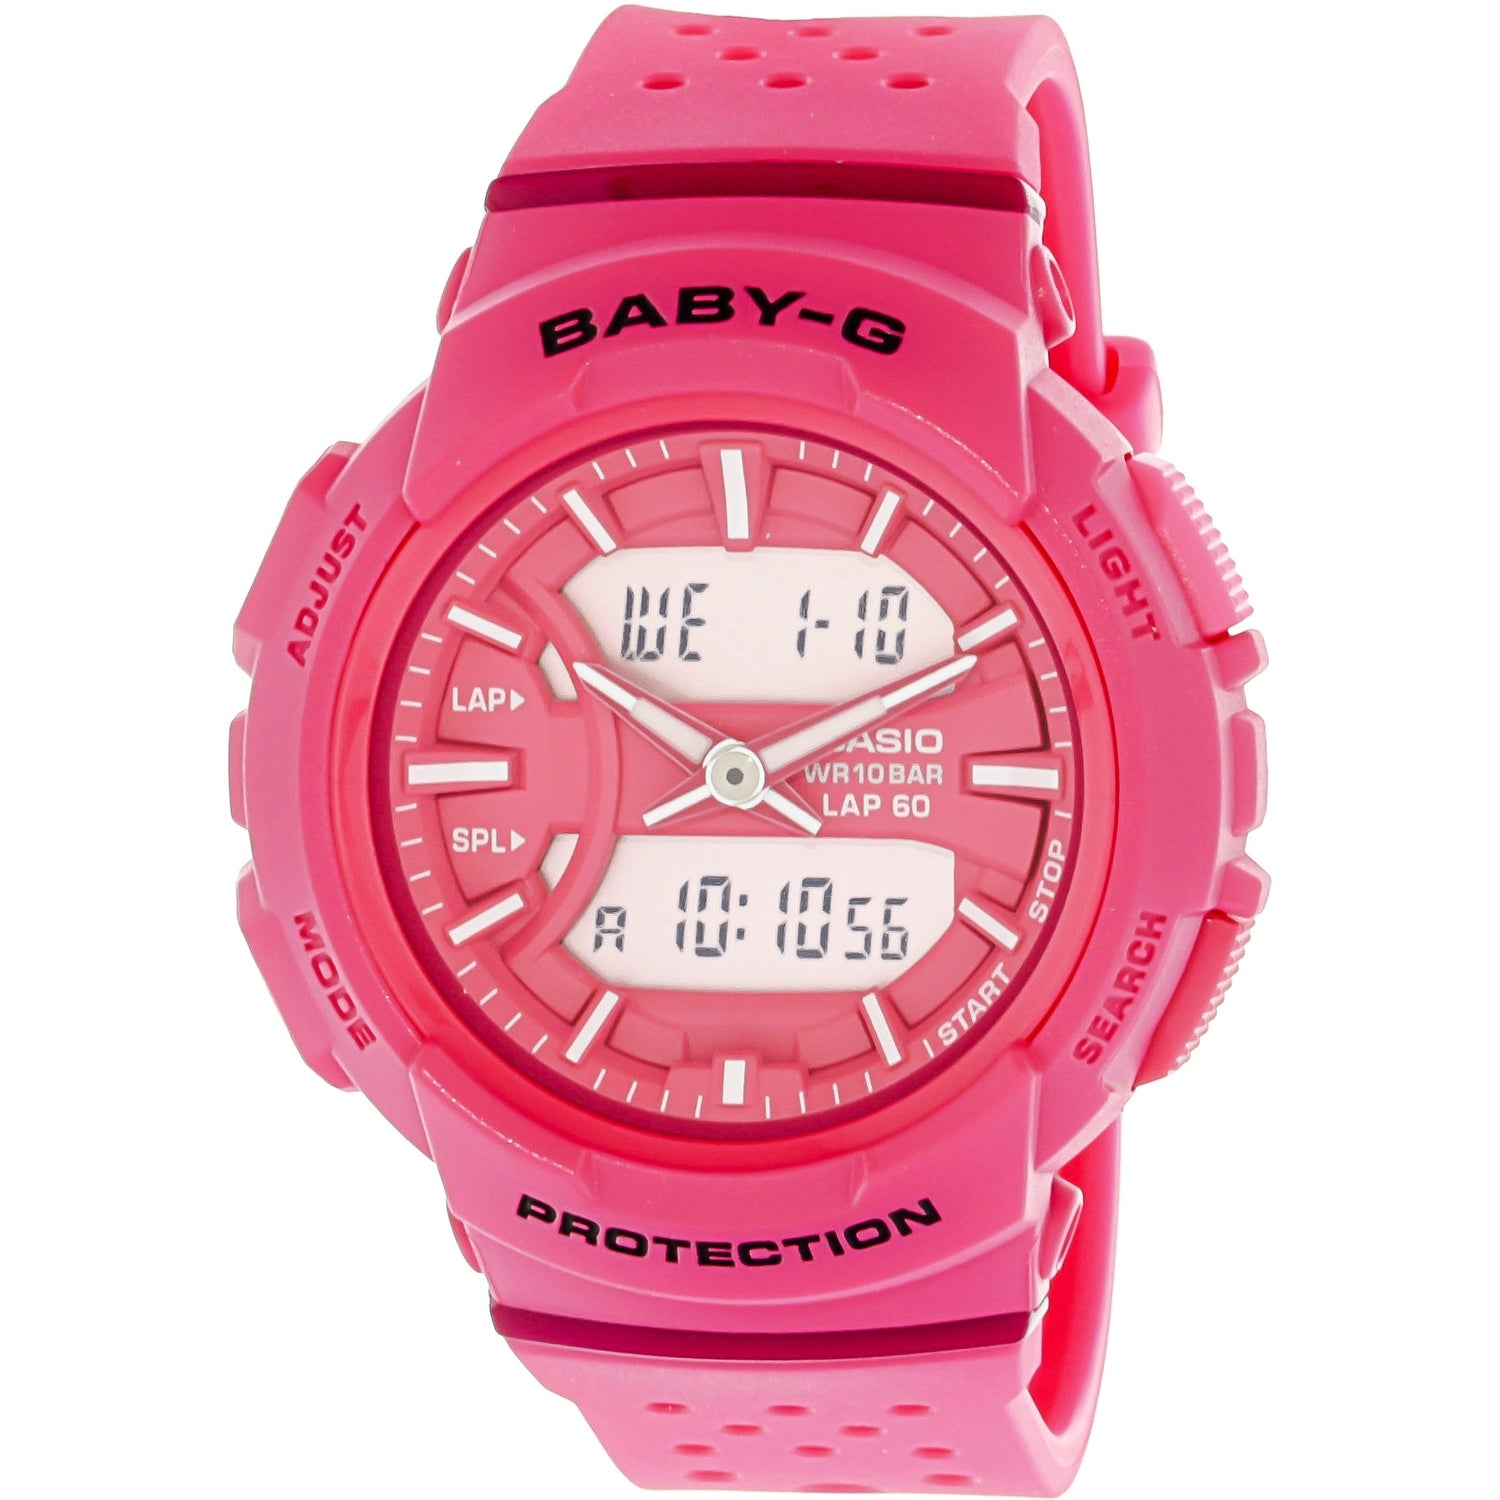 Shop Casio Womens Baby G Pink Resin Japanese Quartz Sport Watch Bga 240l 1a Free Shipping Today 19844152